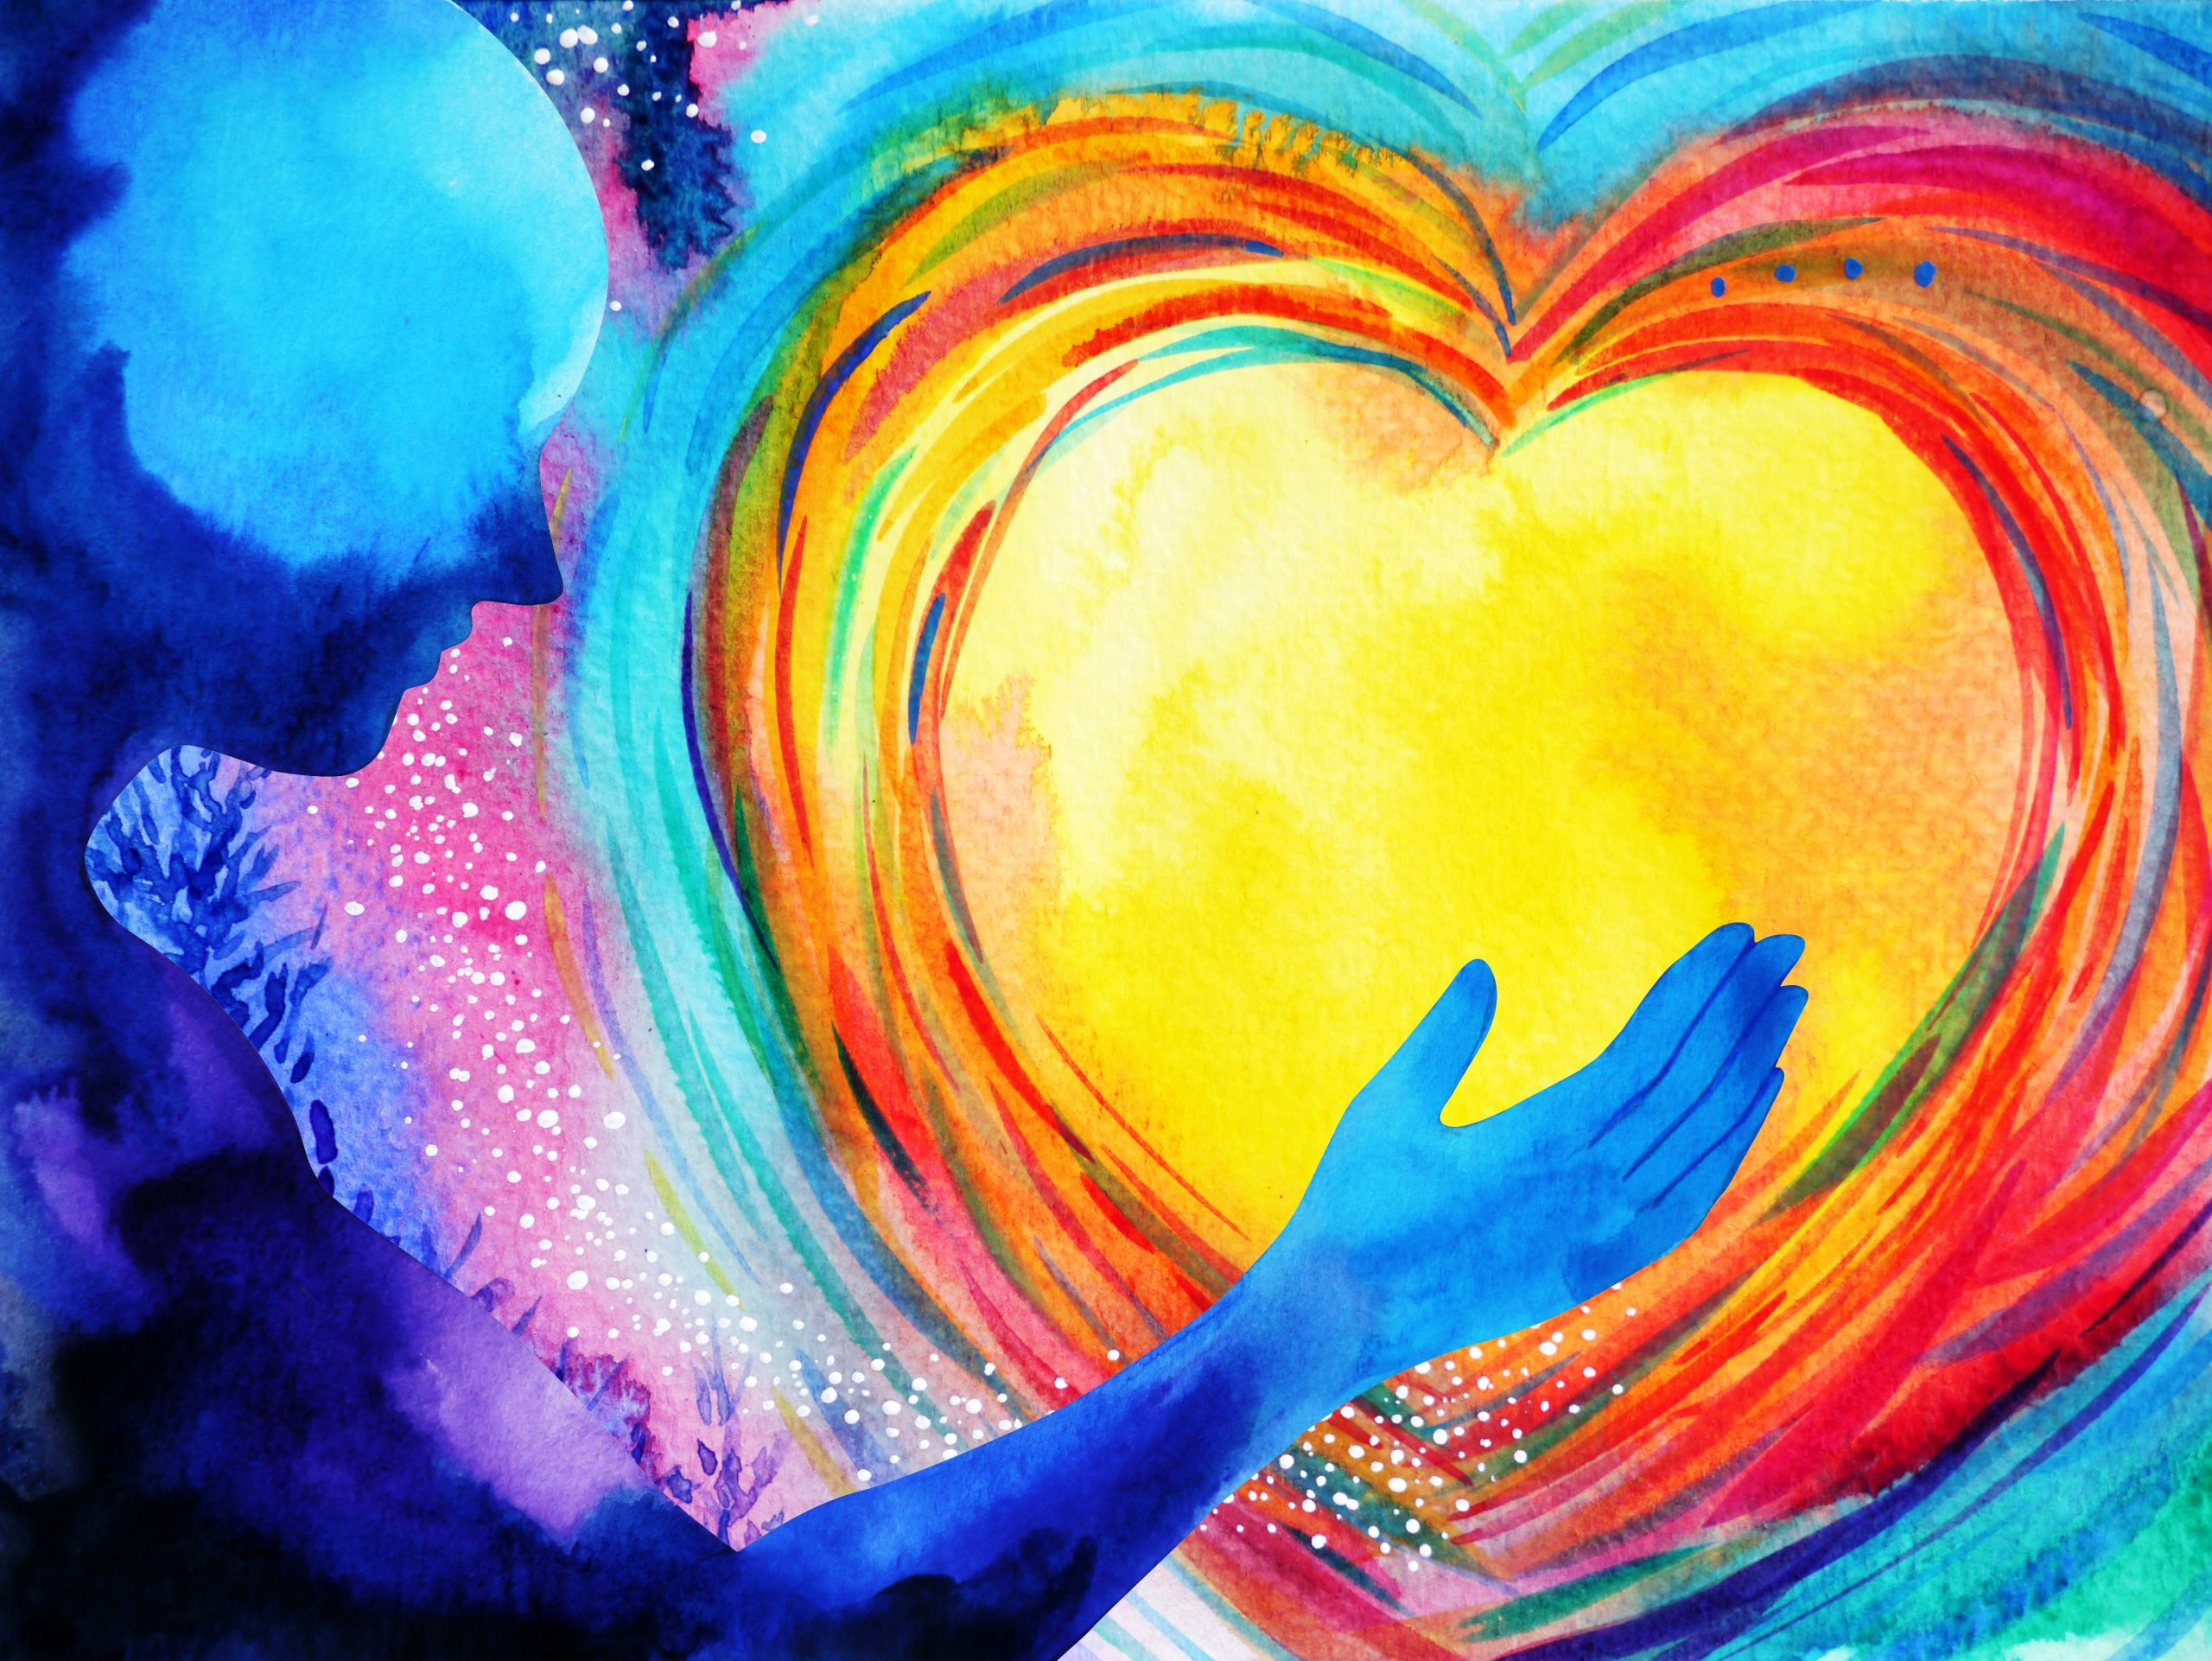 painting, person holds colorful heart, free global energy healing and guided meditation